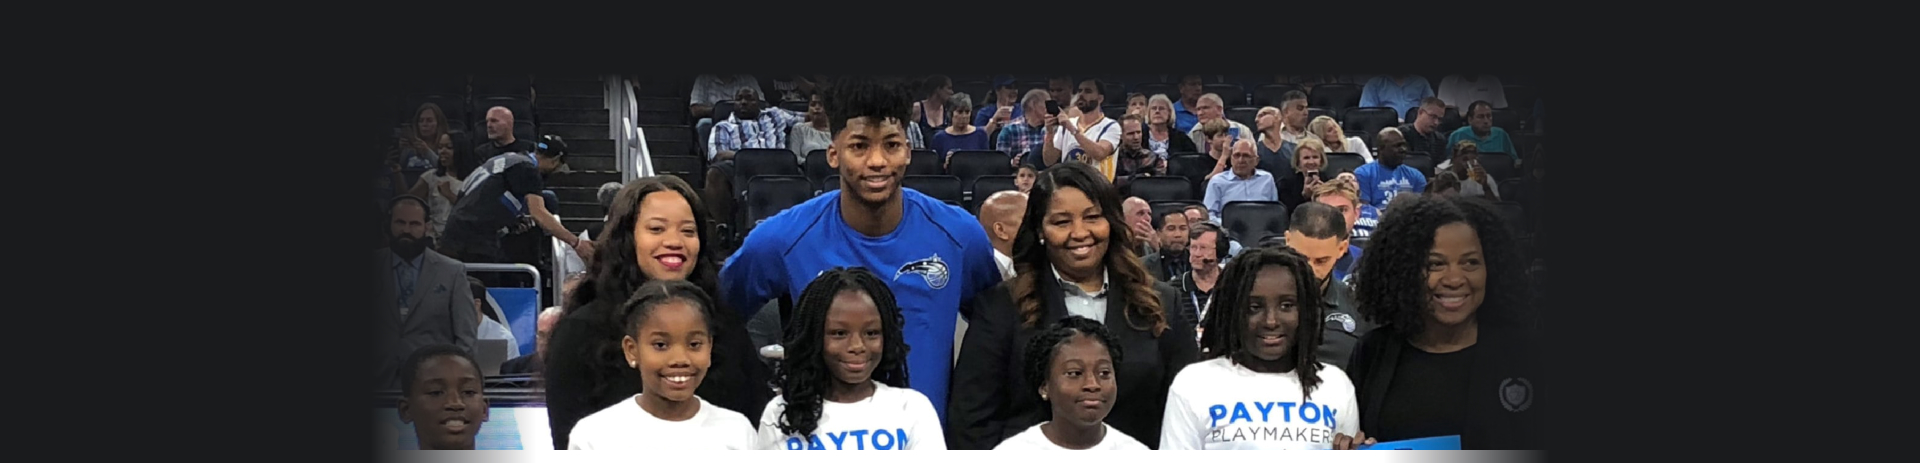 payton with children in the court